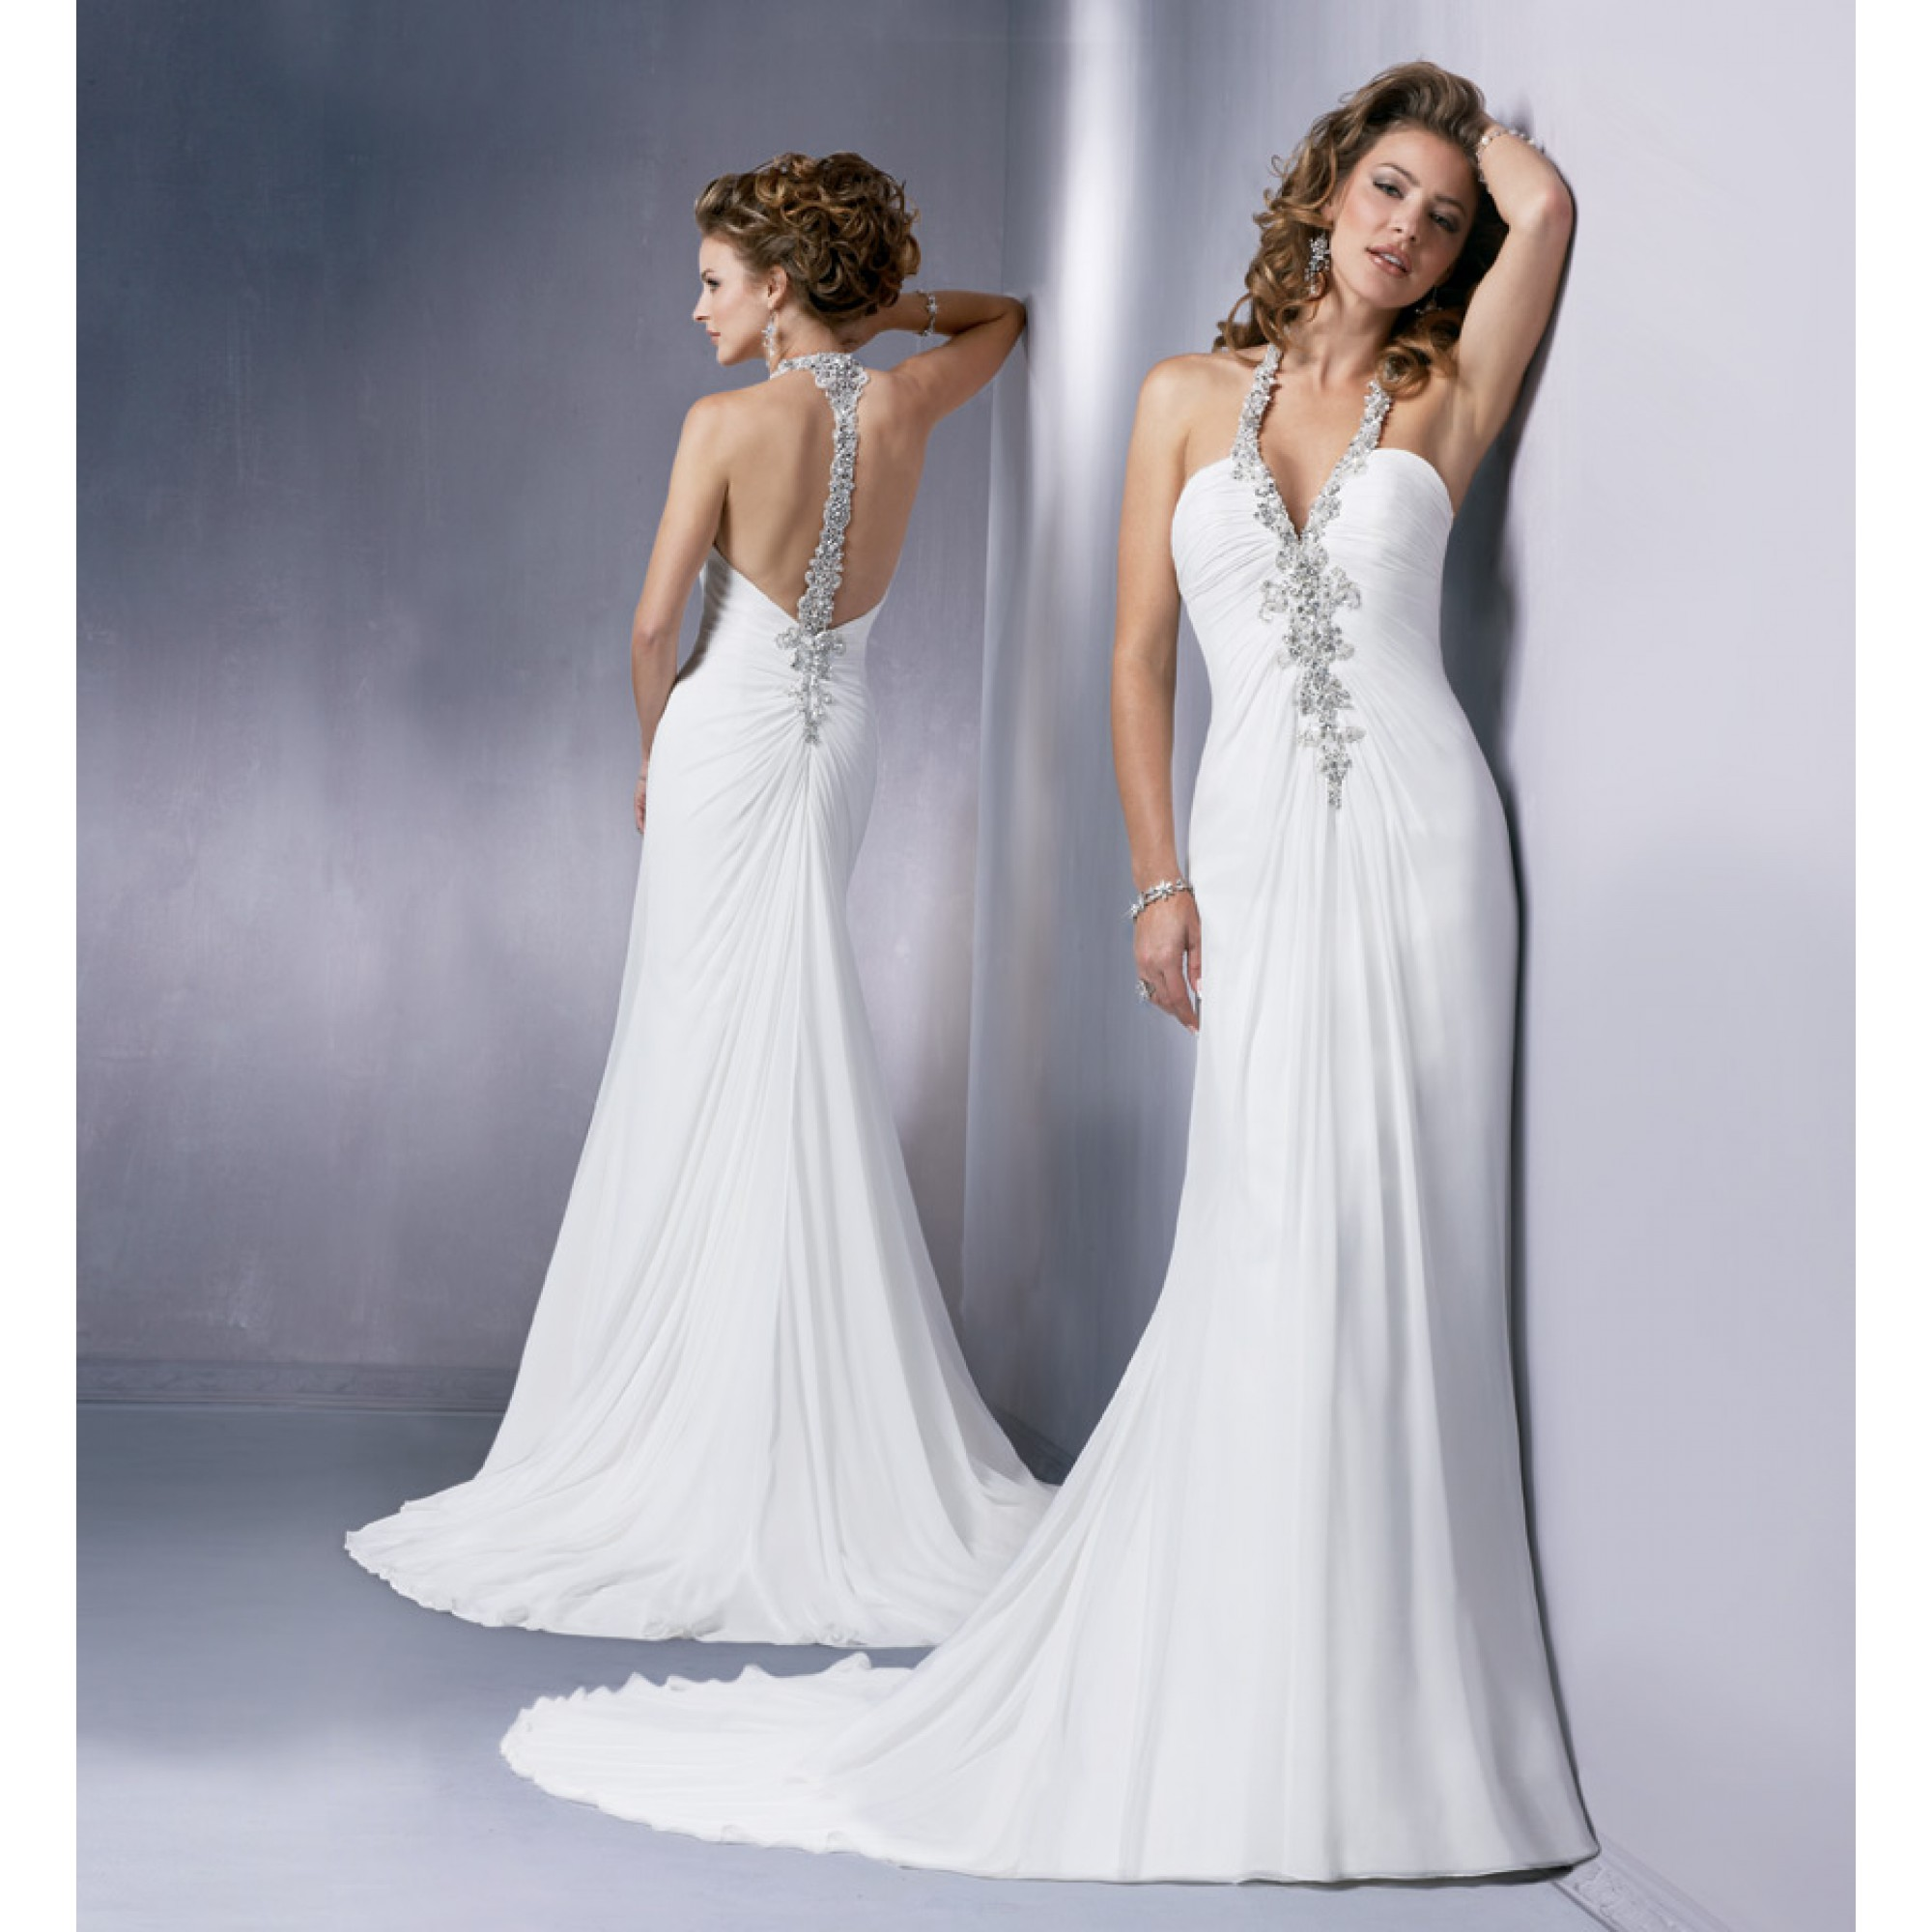 used beach wedding dresses photo - 1